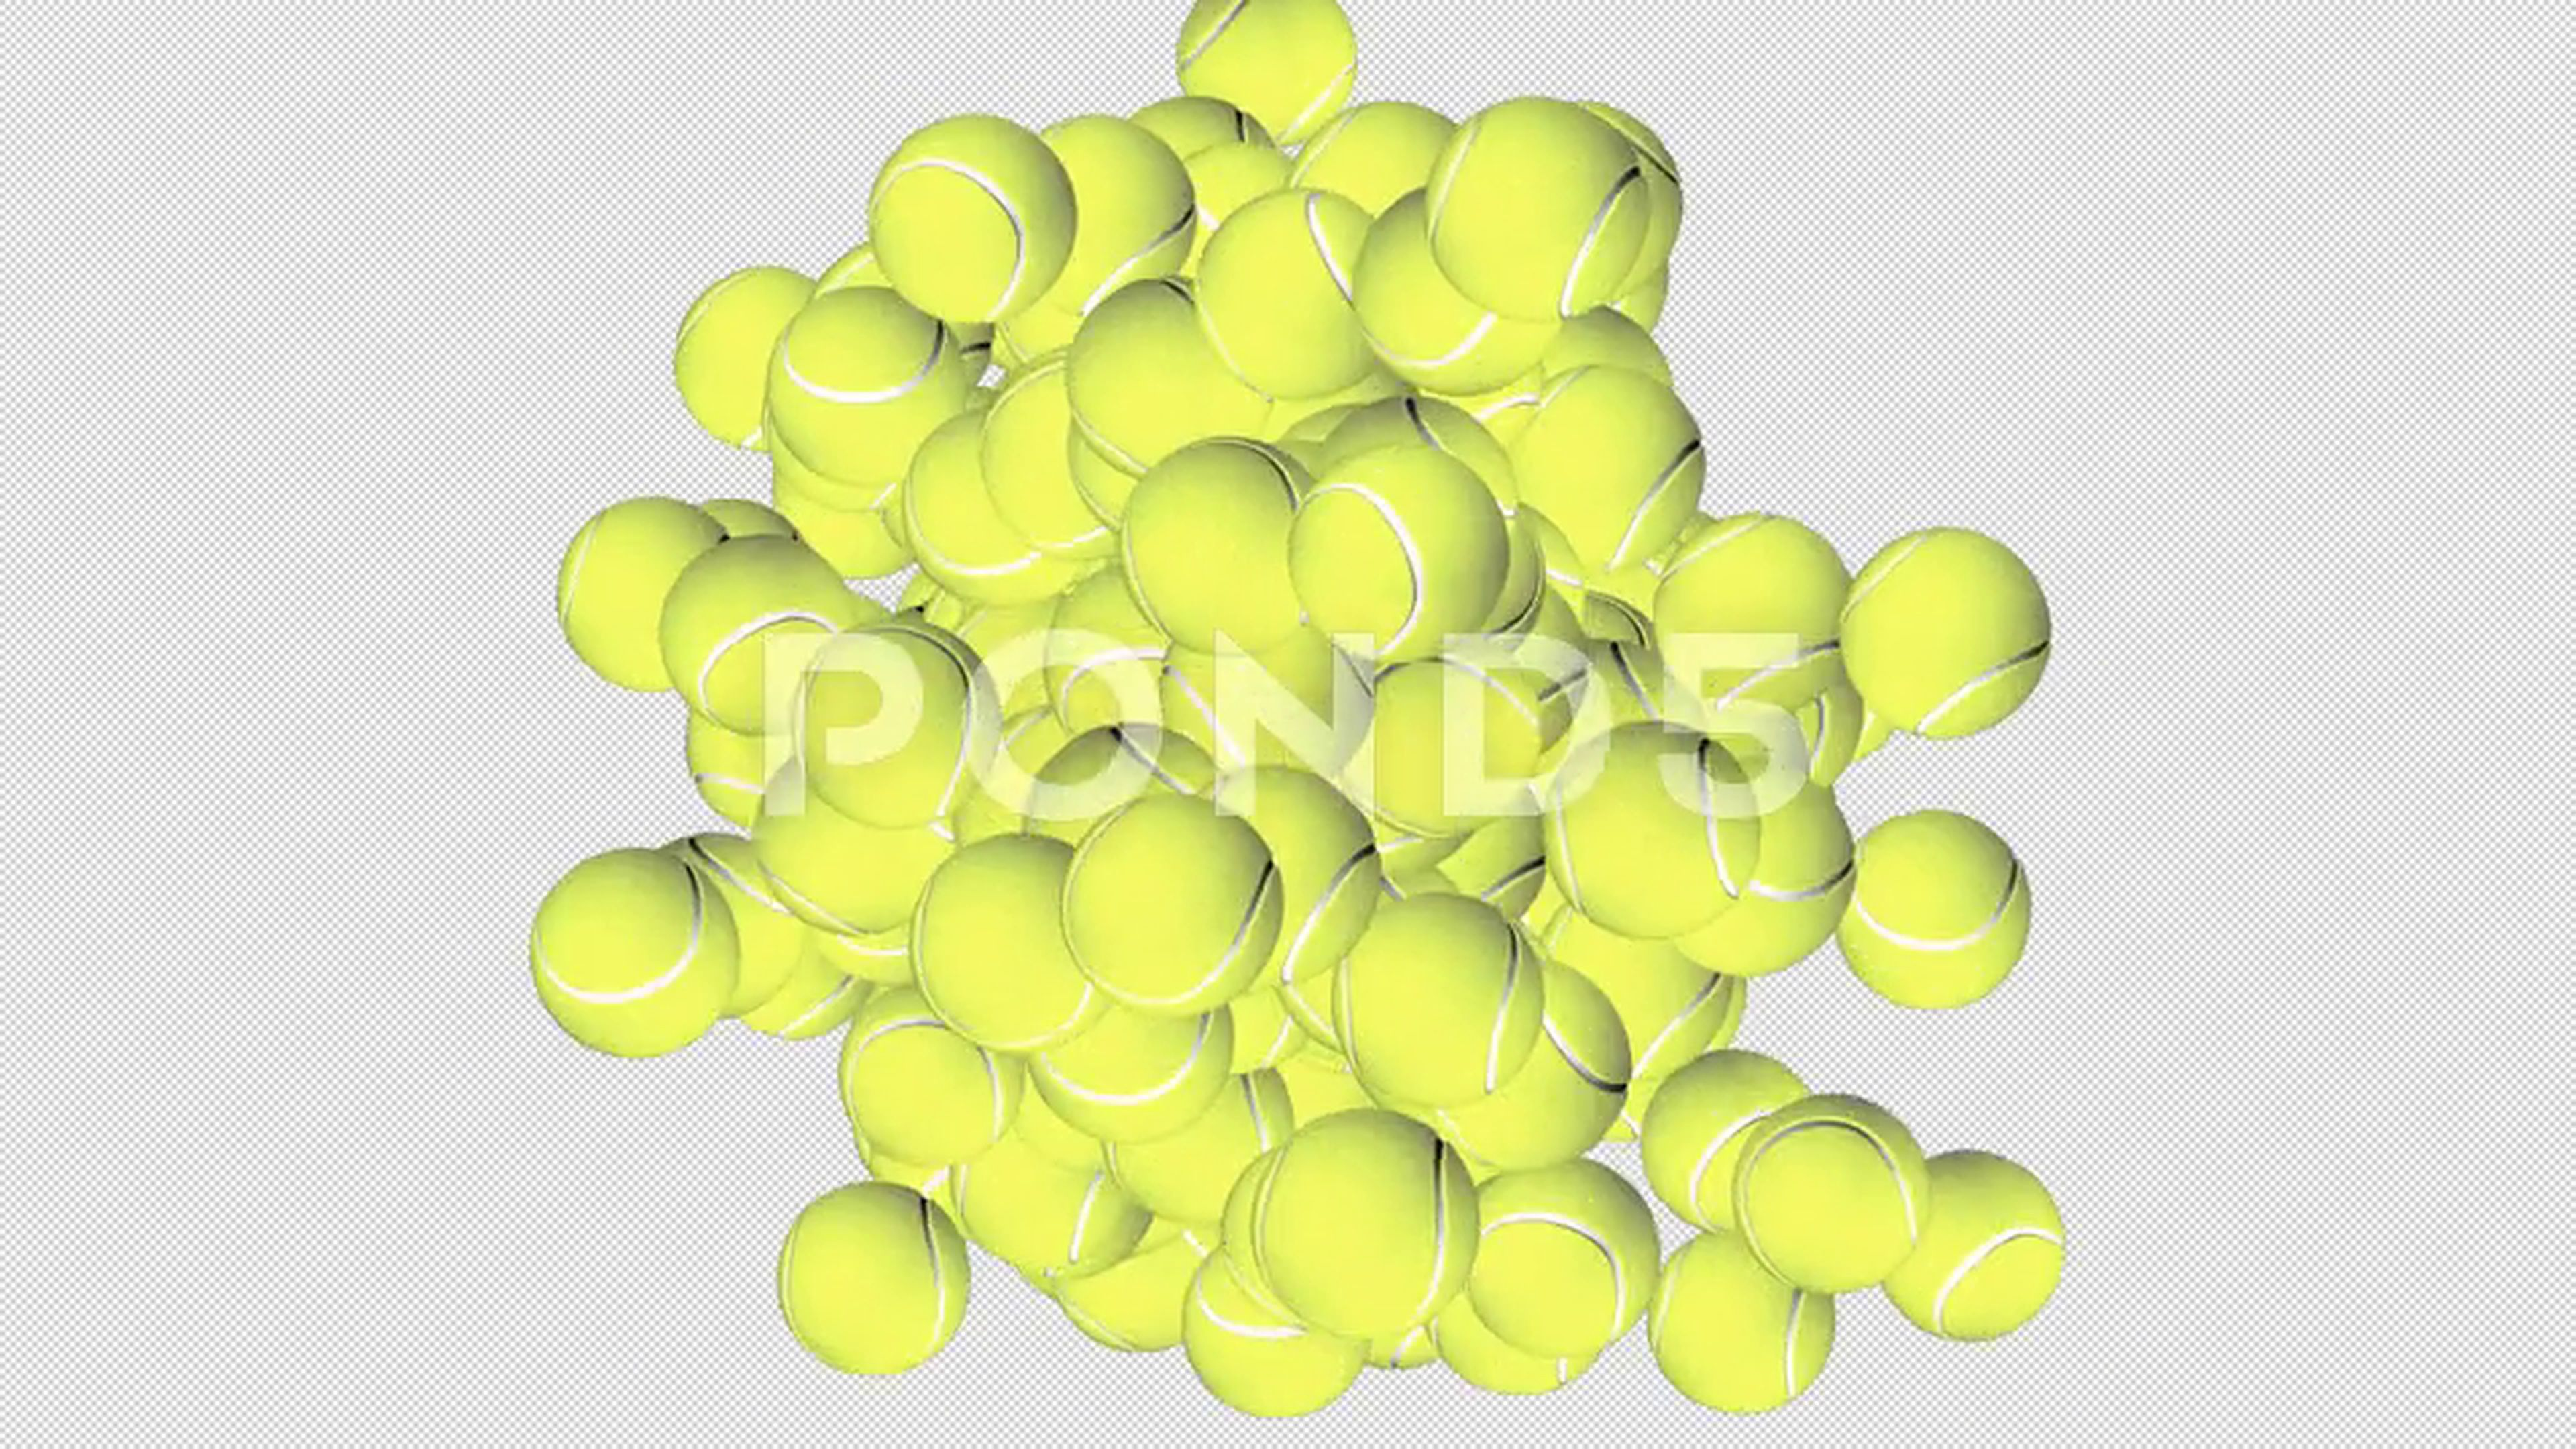 Advanced Tennis Balls Explosion Full Ultra Hd 4k Rgb Alpha Transparent Stock Footage Explosion Full Ultra Advanced Tennis Balls Explosion Ball